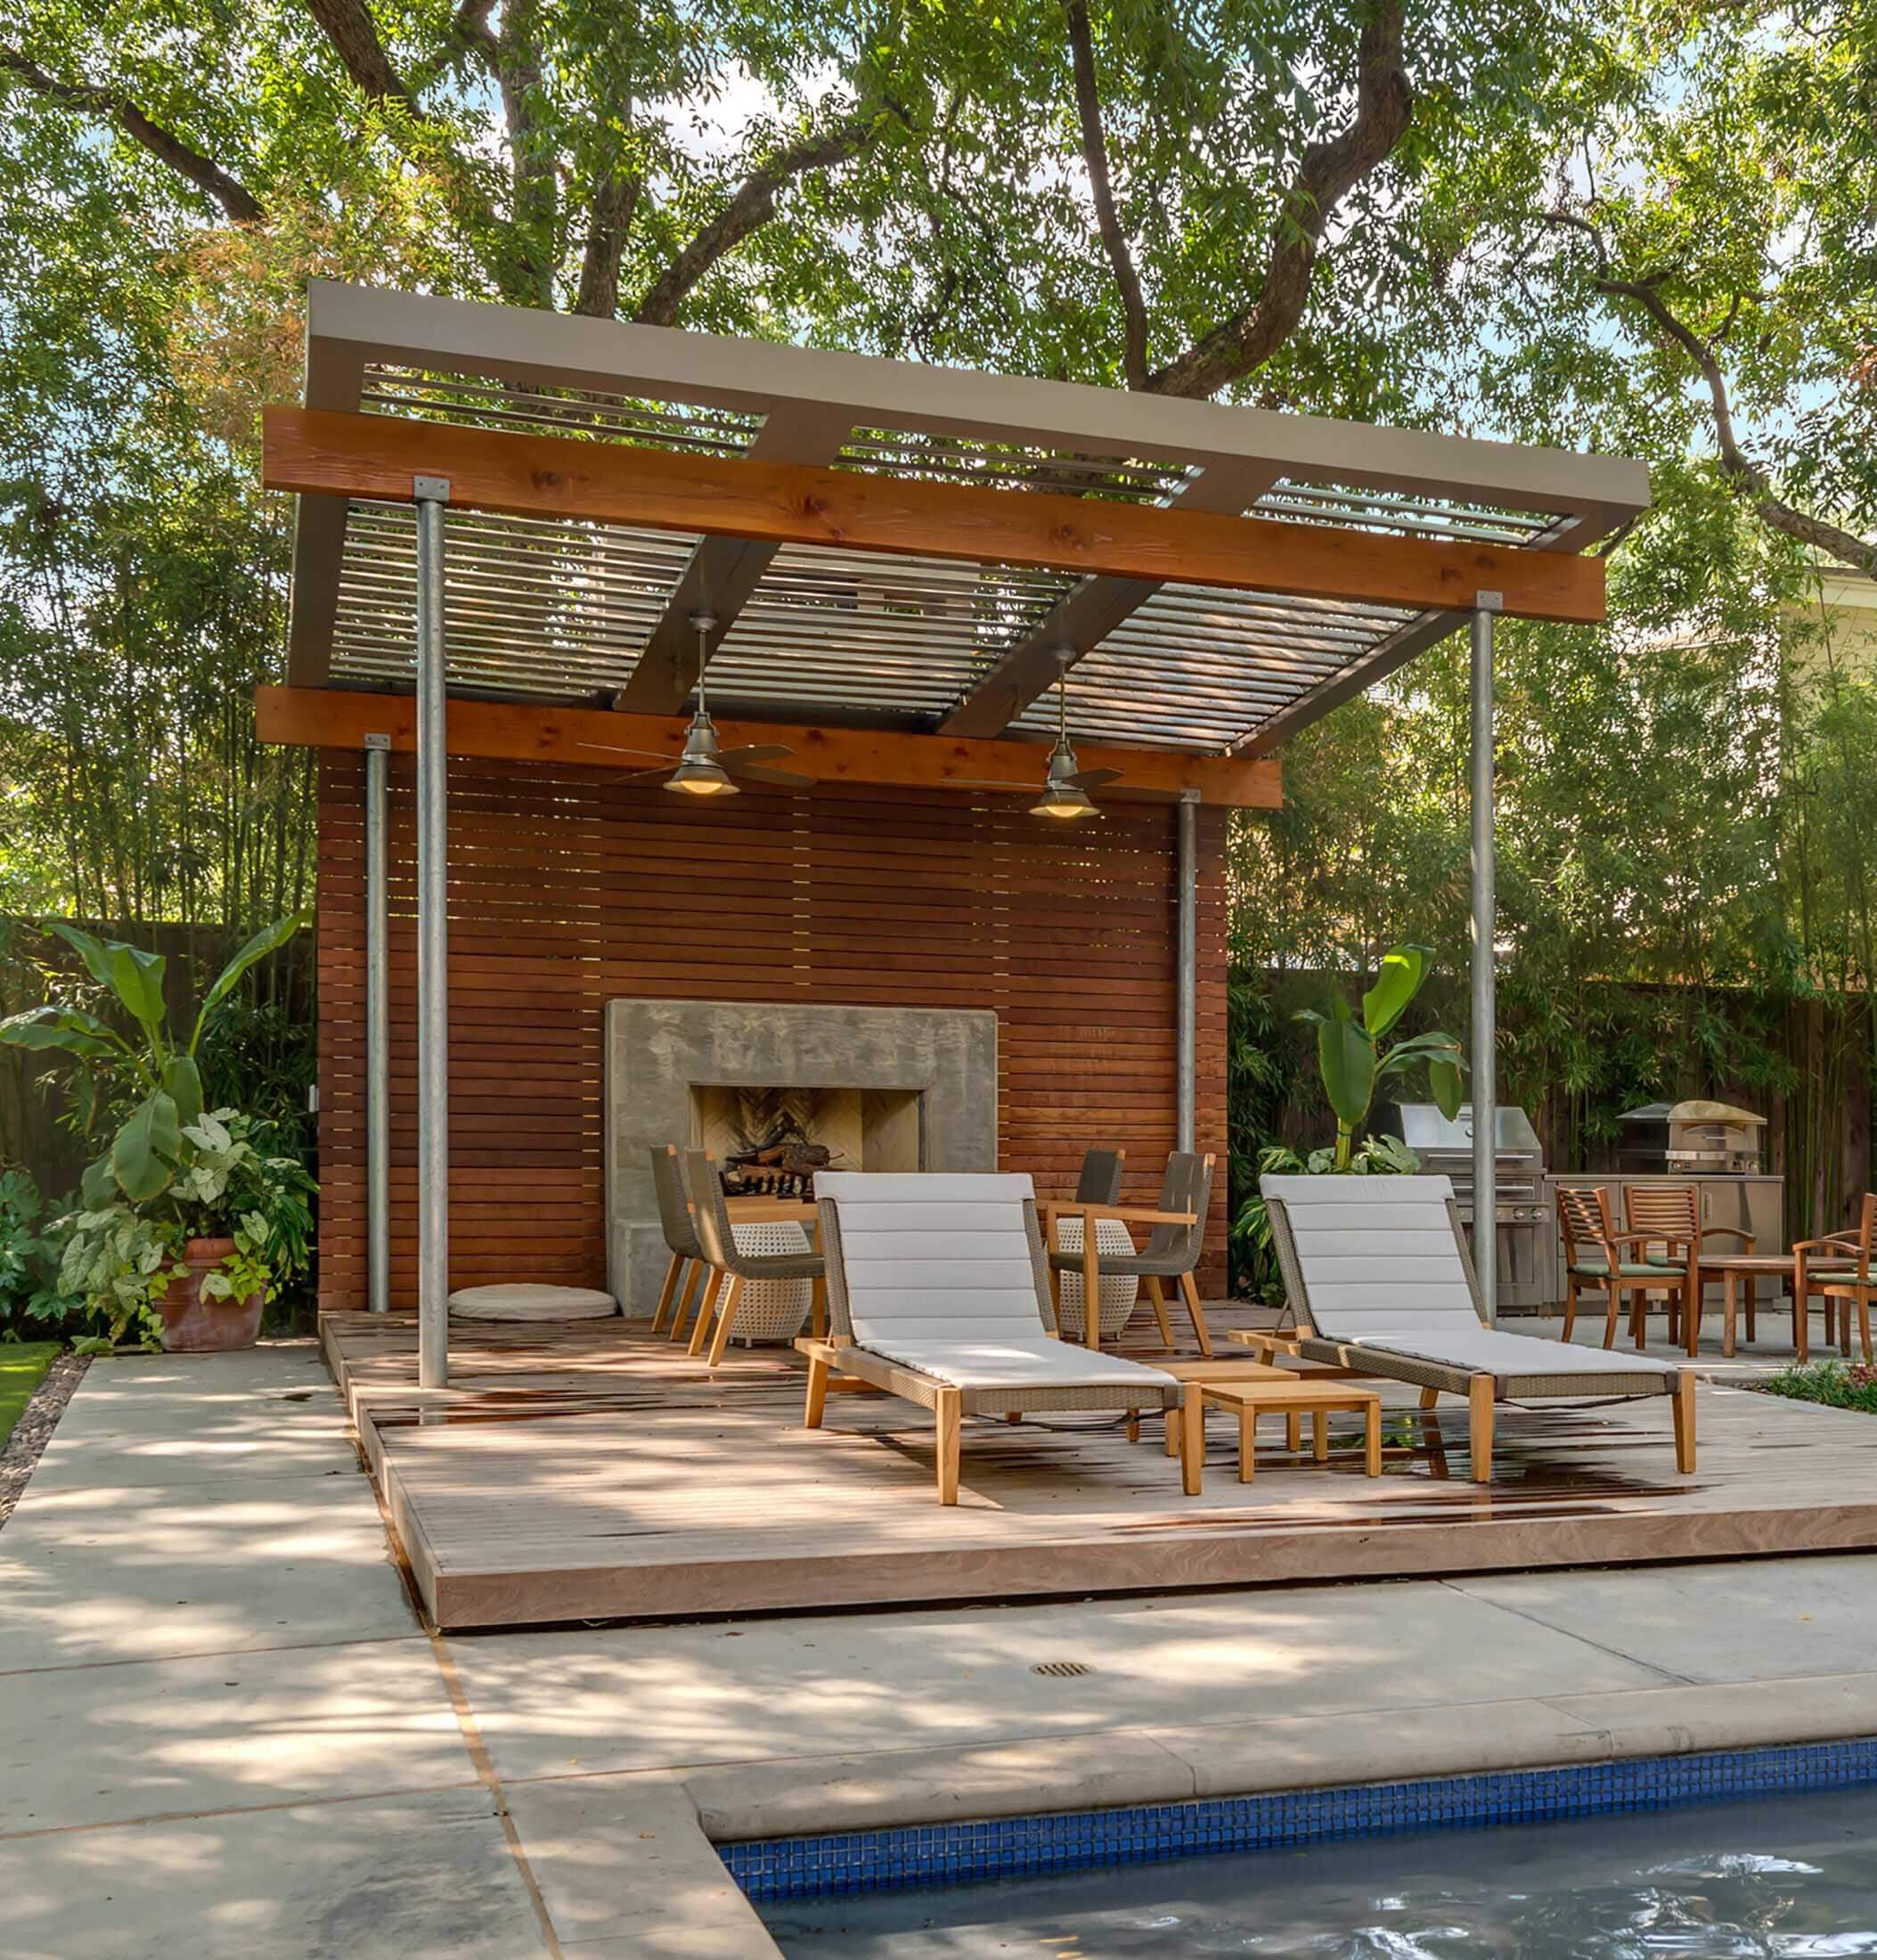 52 Cheap DIY Pergola Ideas Plans for Your Backyard and